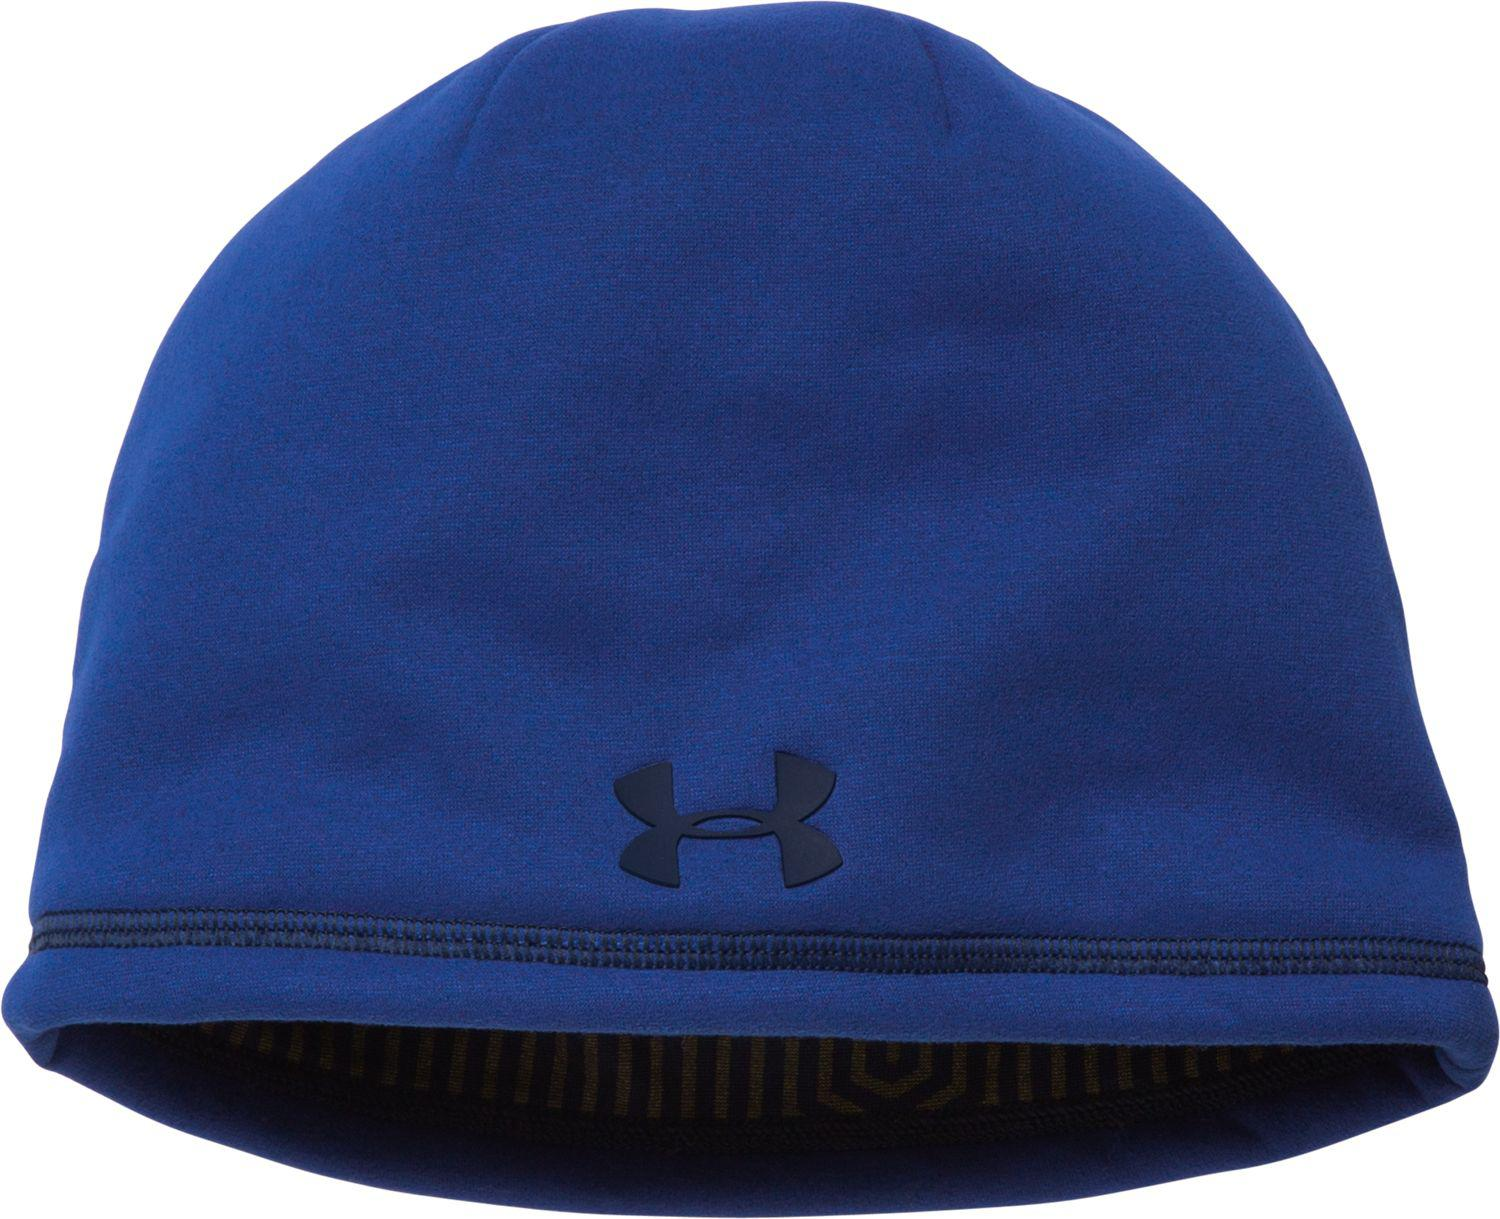 8f1972285ad ... wholesale under armour blue coldgear infrared elements storm 2.0 beanie  for men lyst 5a586 cce20 ...